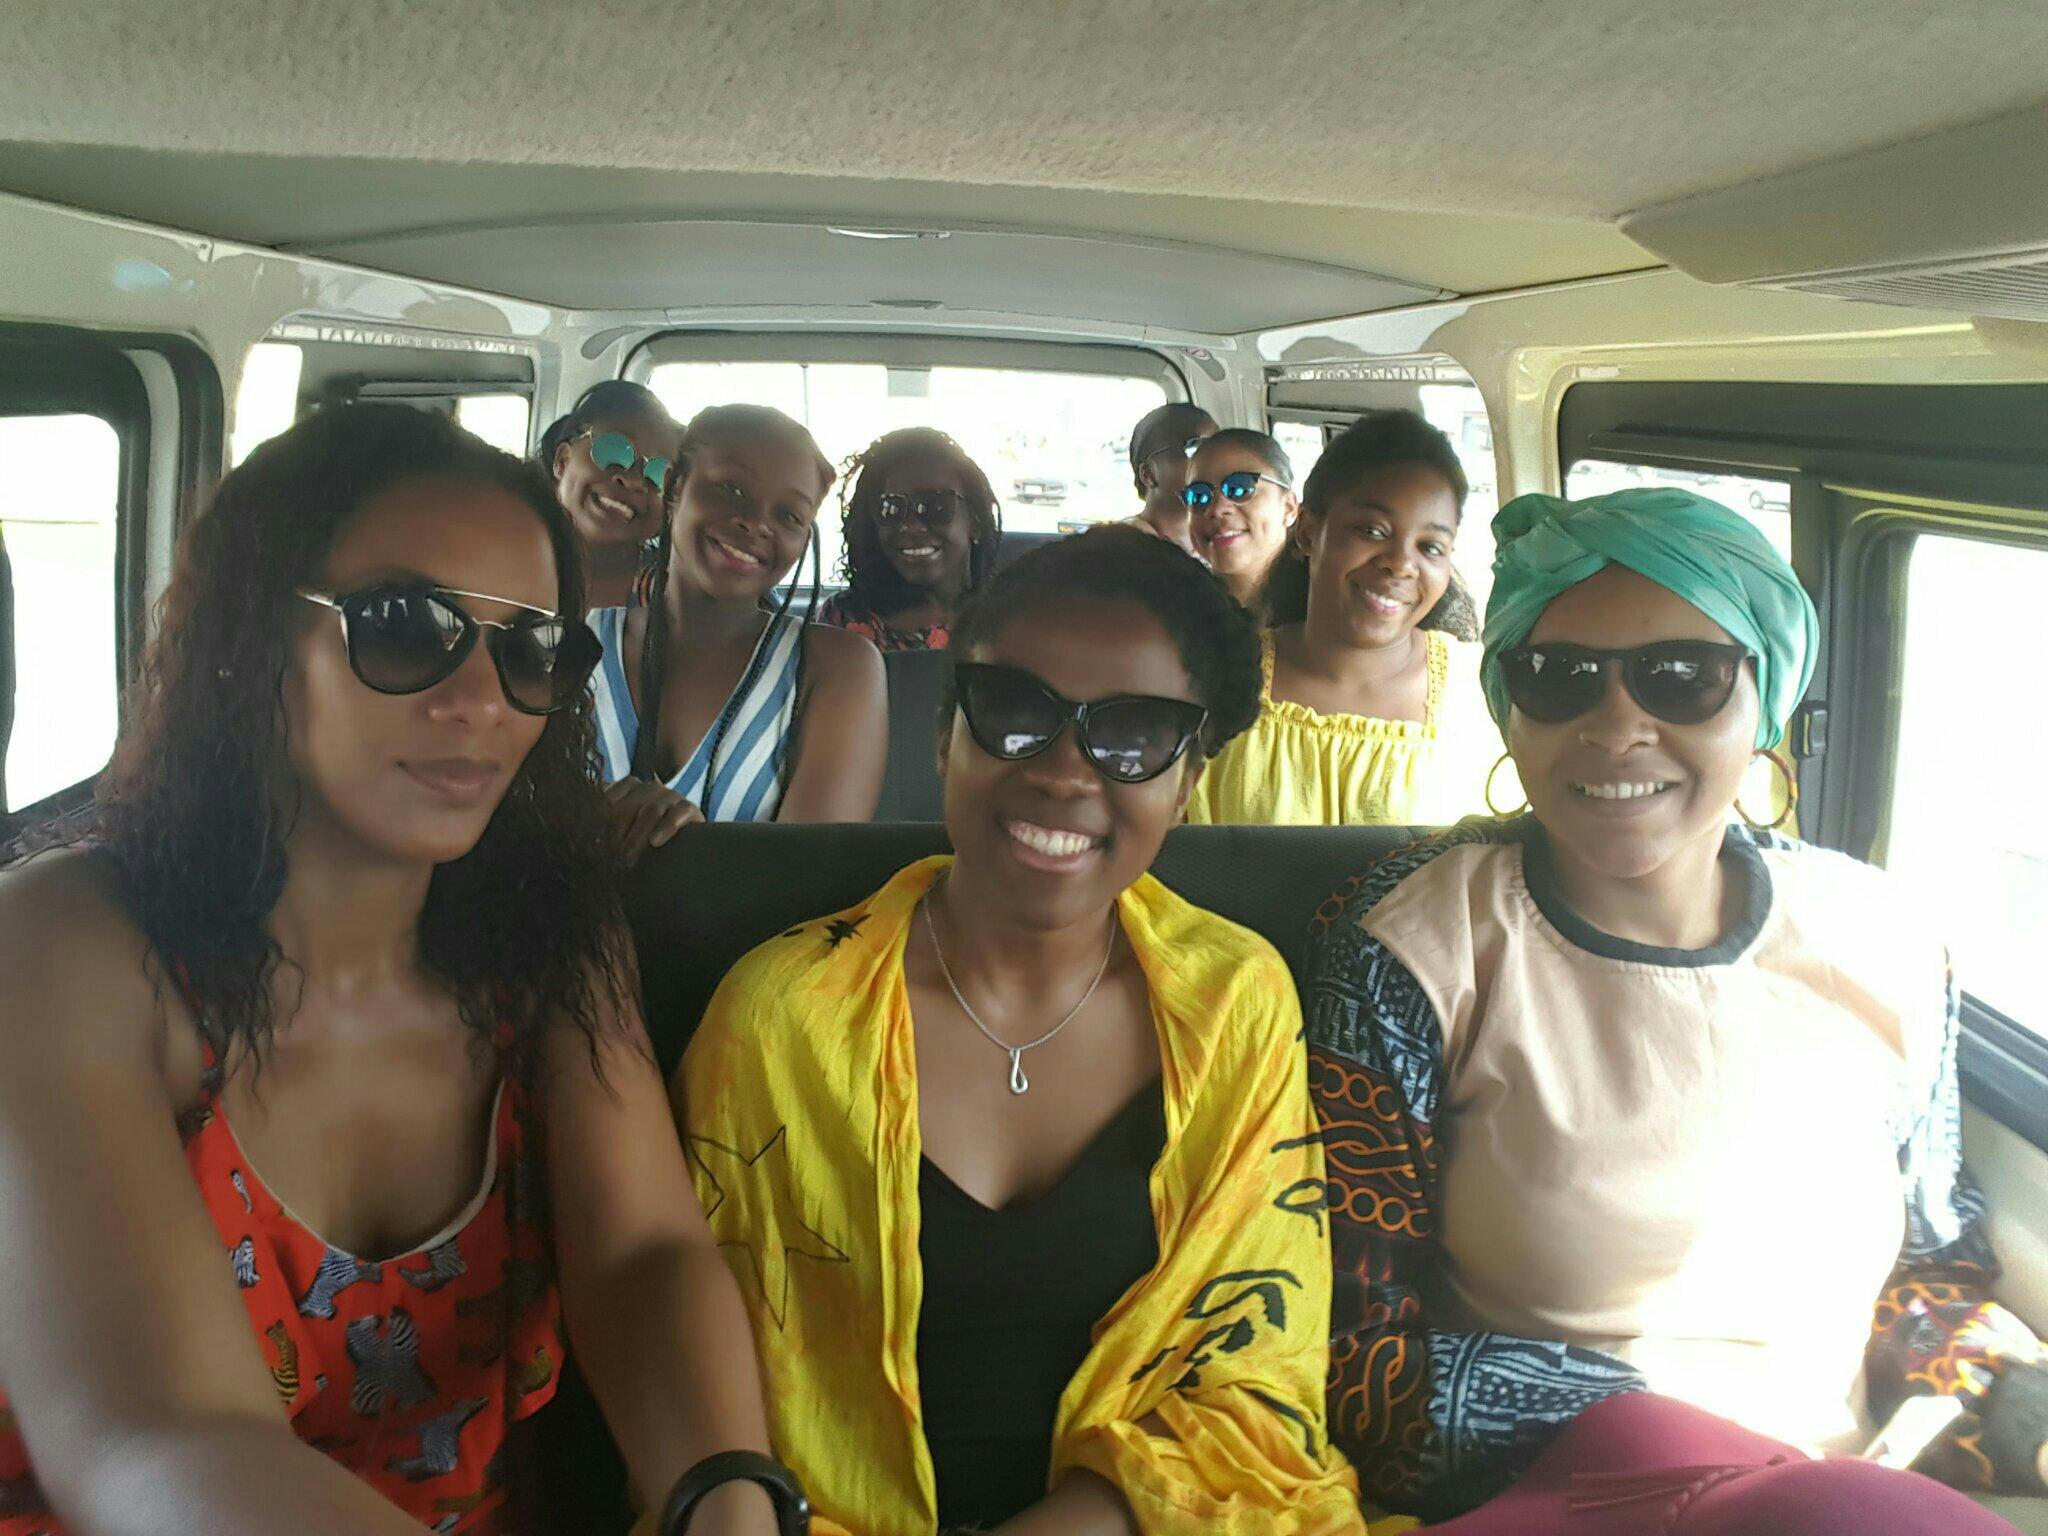 we-sisterhood-dakar-1-lac-rose-femmes-noires-groupe-transport-communs-bus